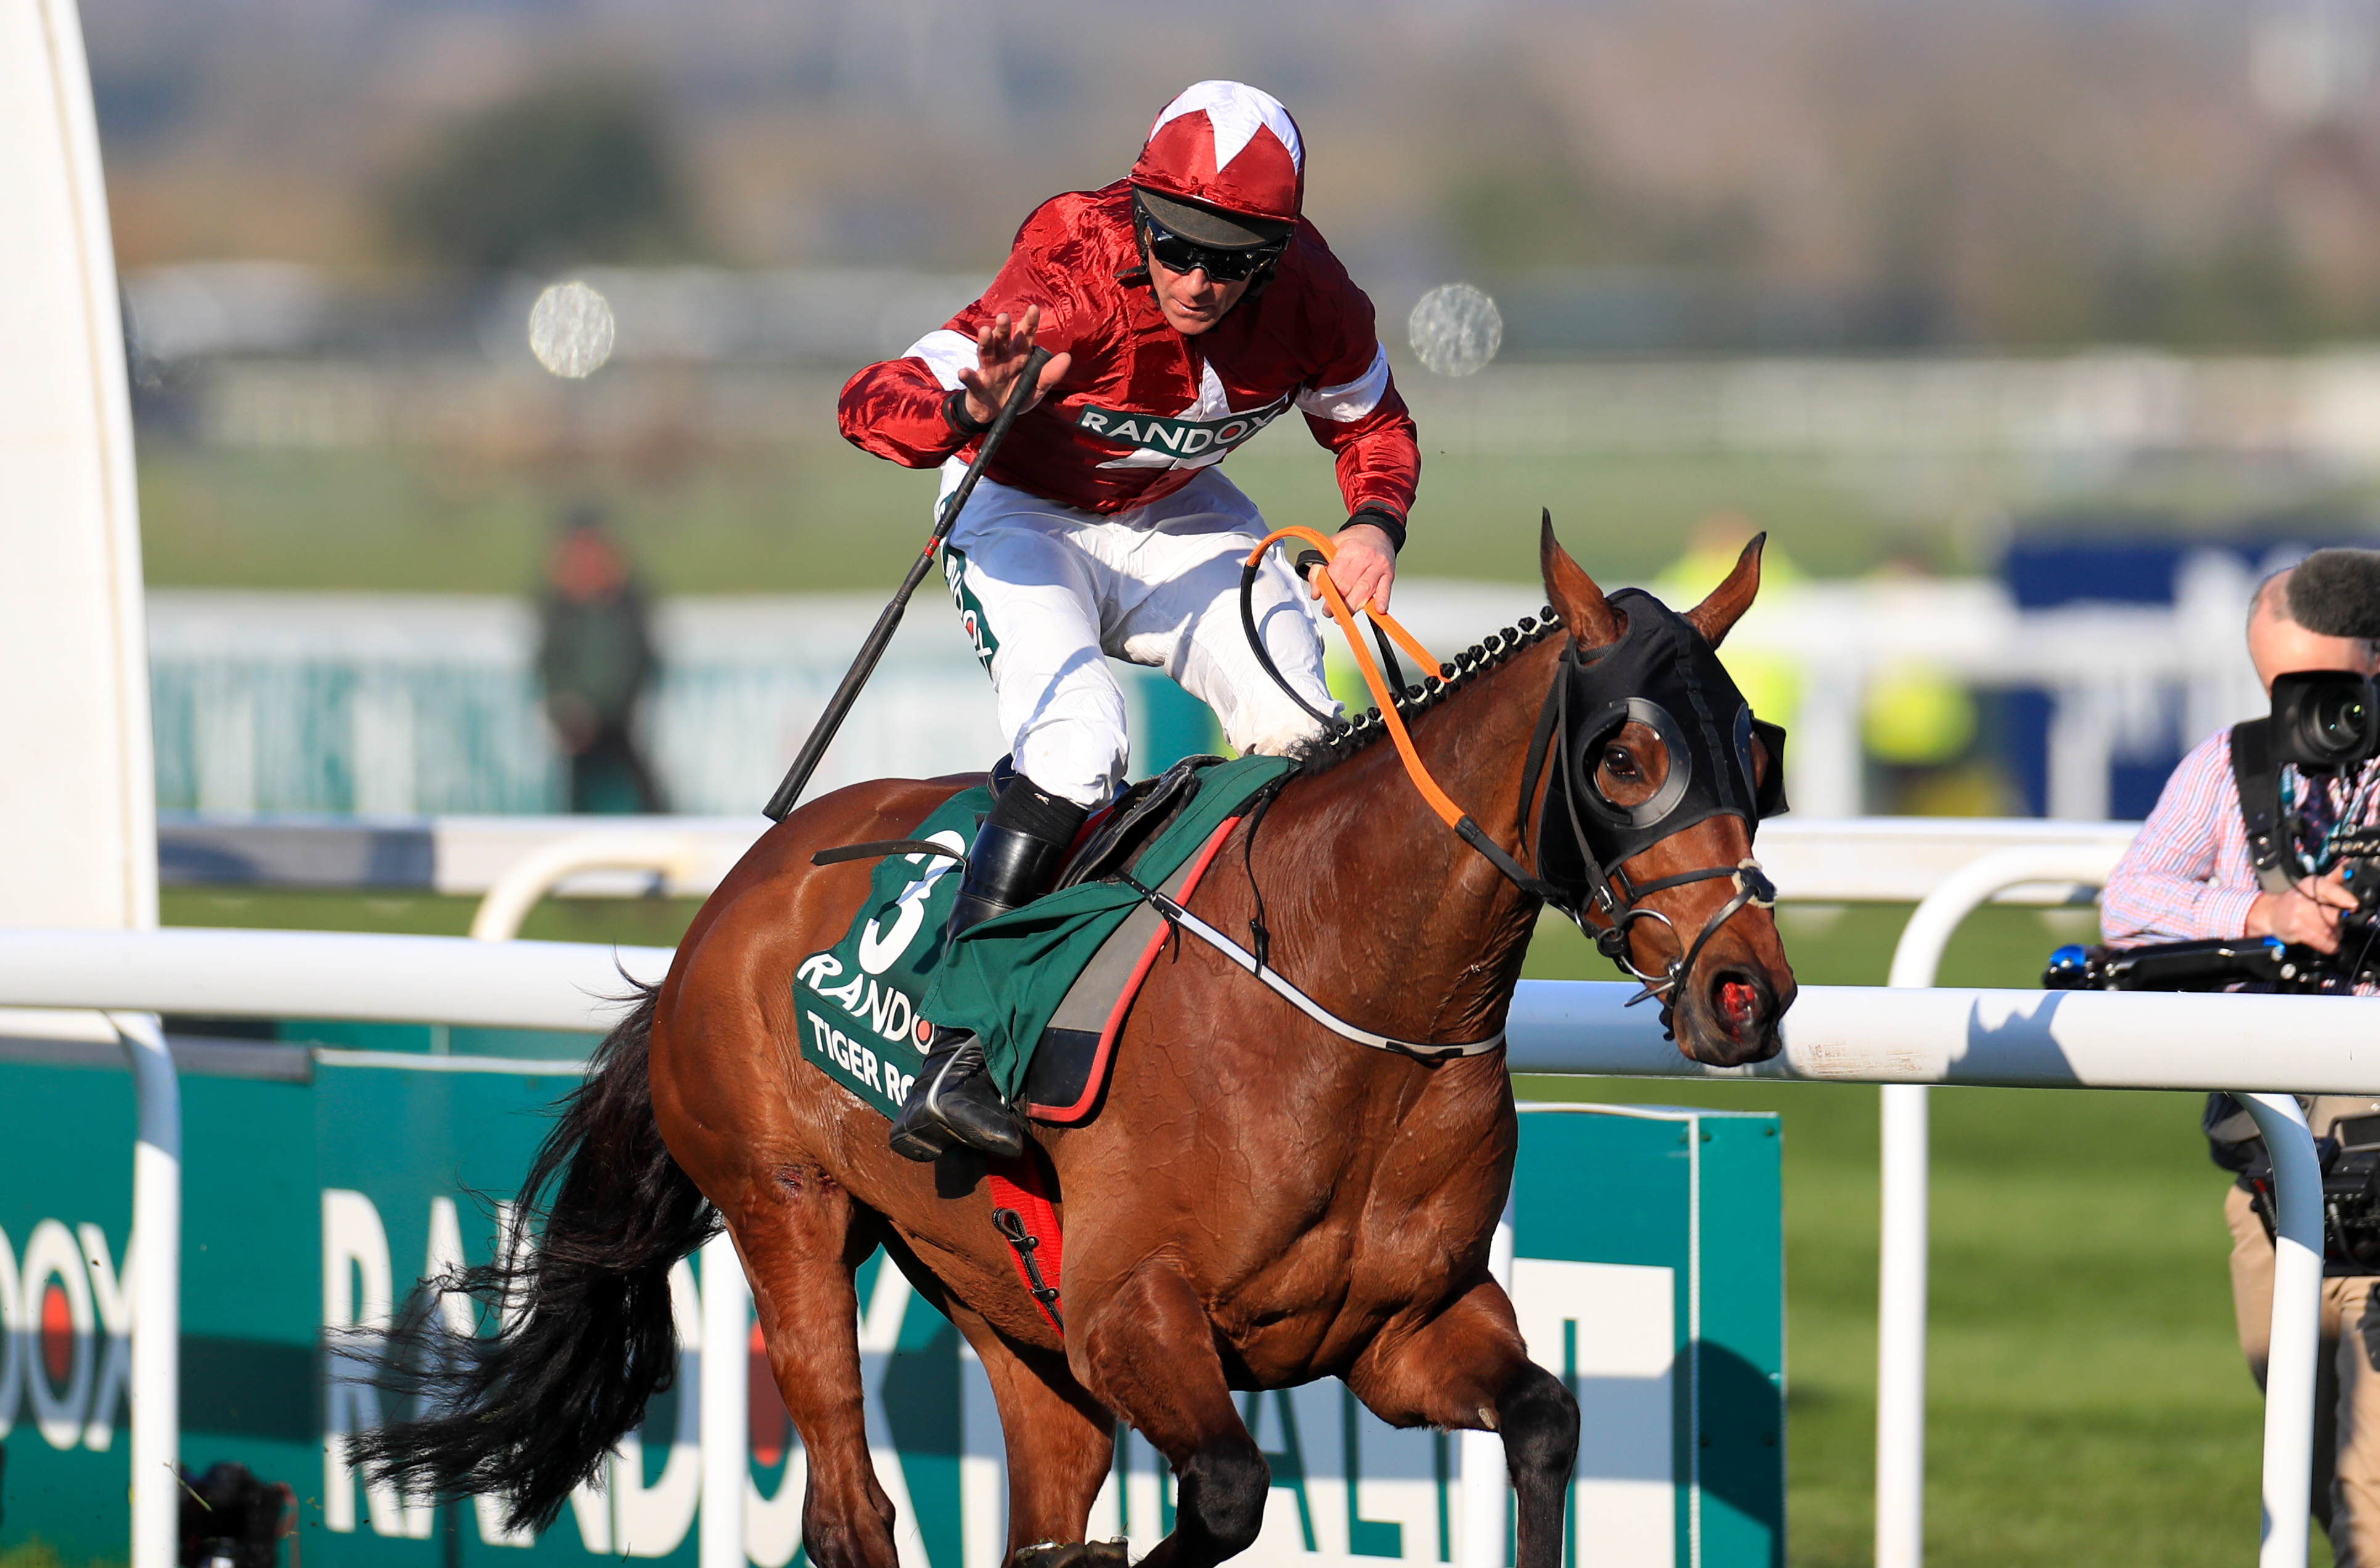 Tiger Roll has been an astonishing servant to Michael O'Leary